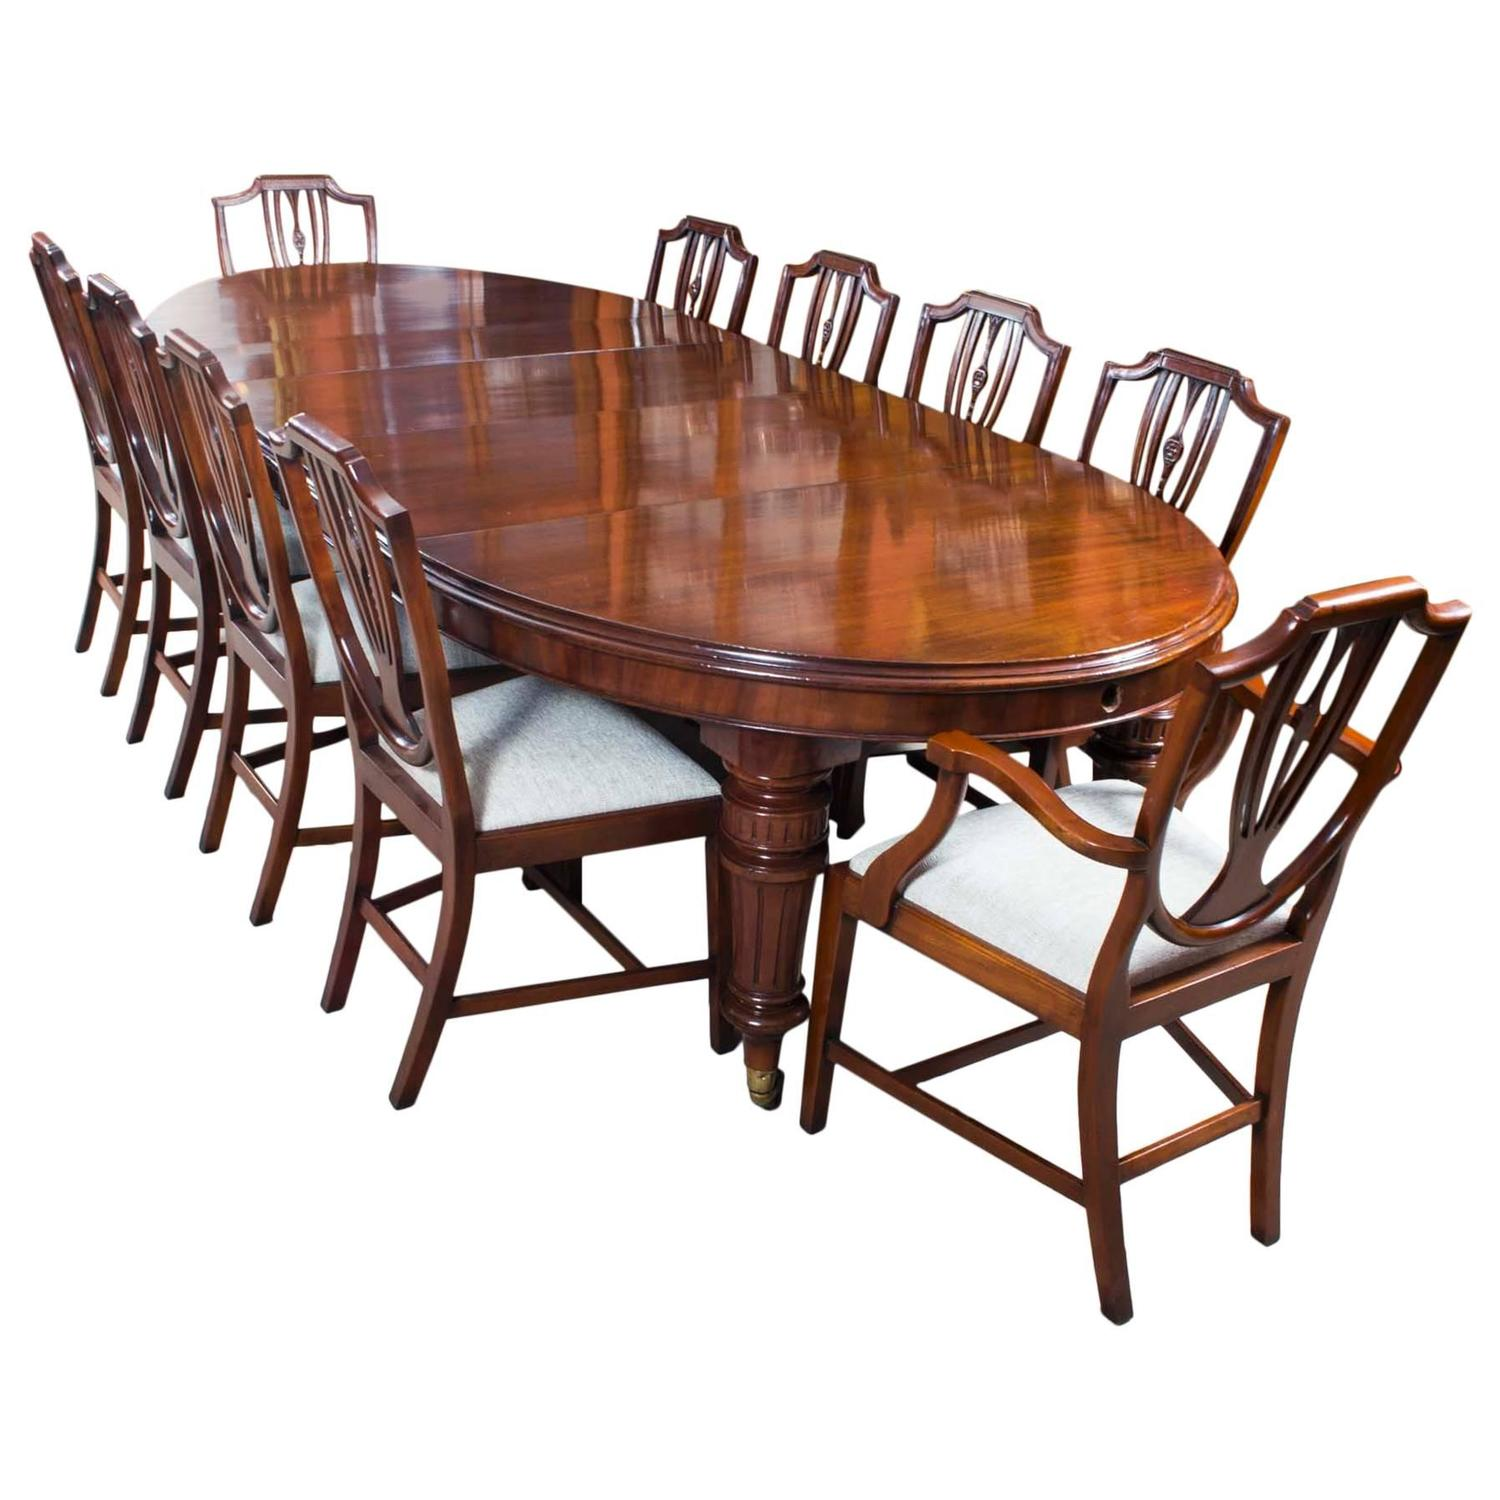 Dining Table Set For 10: Antique Extending Dining